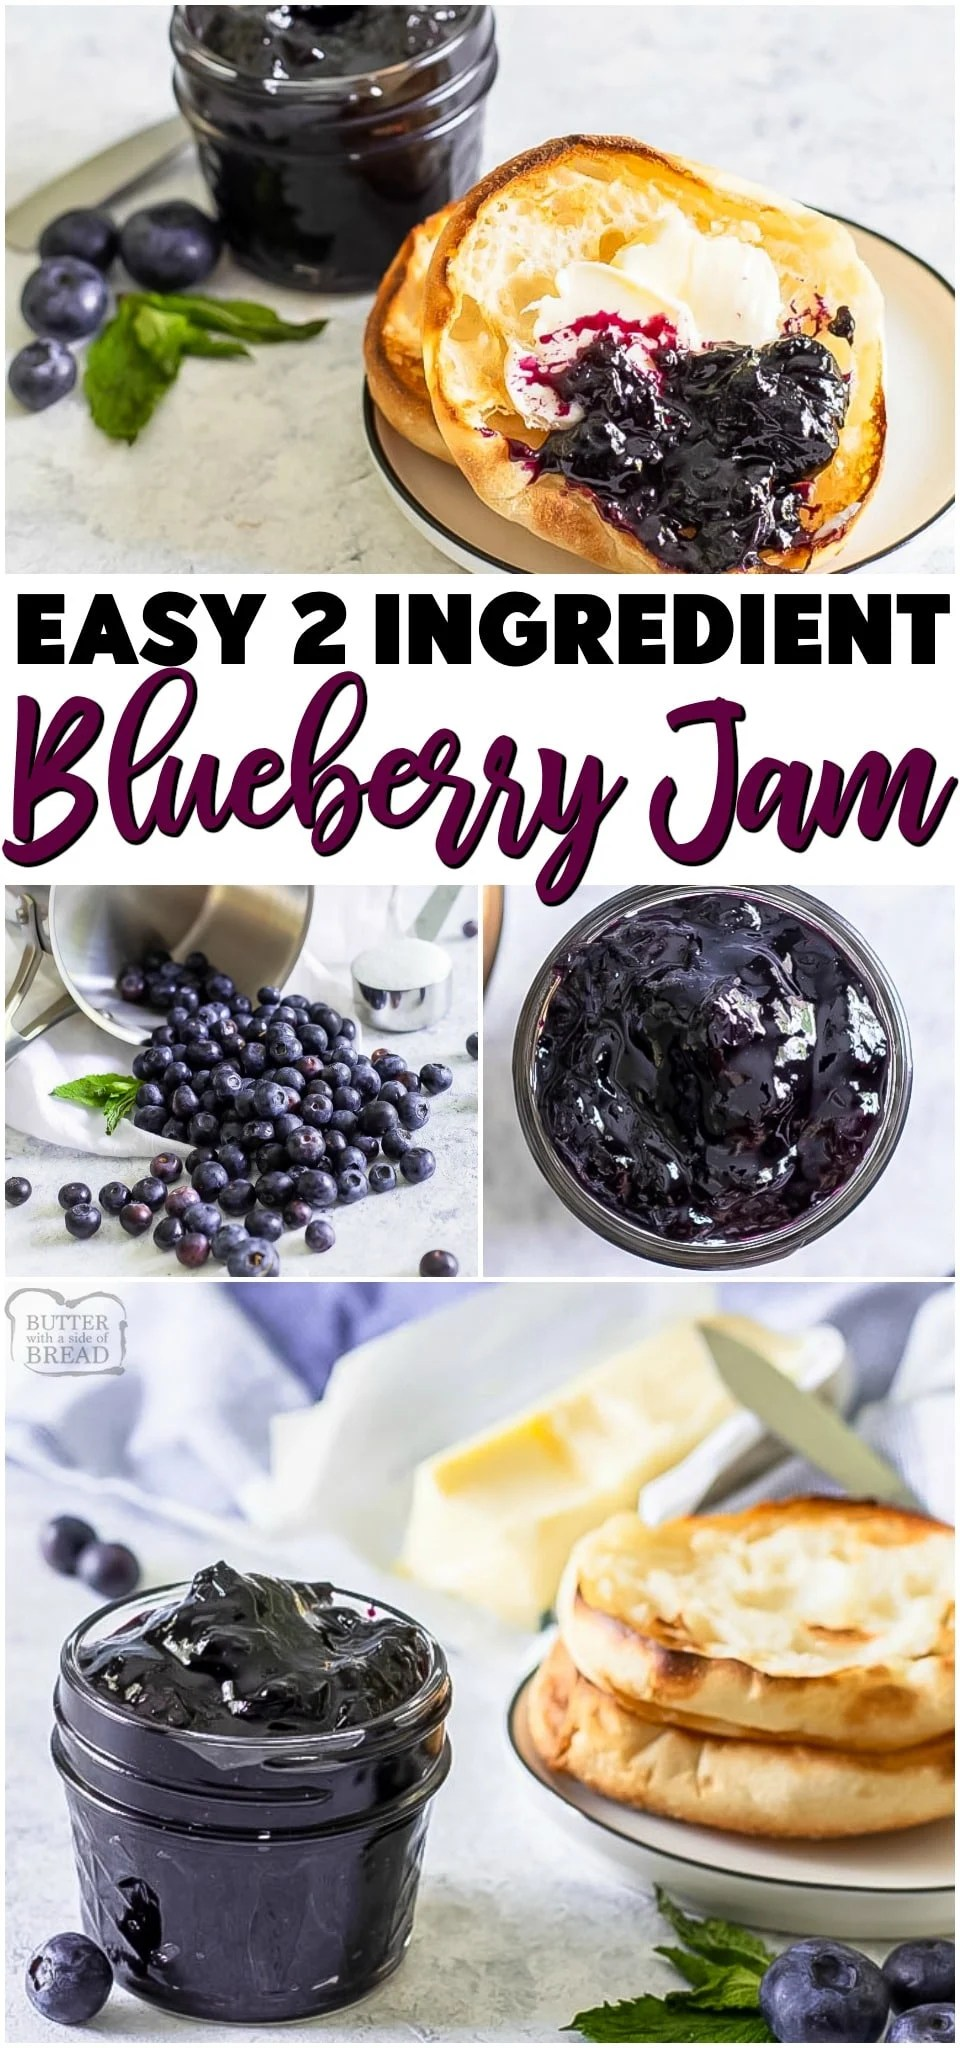 Easy blueberry jam is a delicious homemade jam recipe with only 2 ingredients (and water!) Super simple recipe that's ready in under an hour & perfect way to preserve fresh blueberries! #jam #jamrecipe #easyjam #blueberries #nopectin #freezerjam #recipe from BUTTER WITH A SIDE OF BREAD